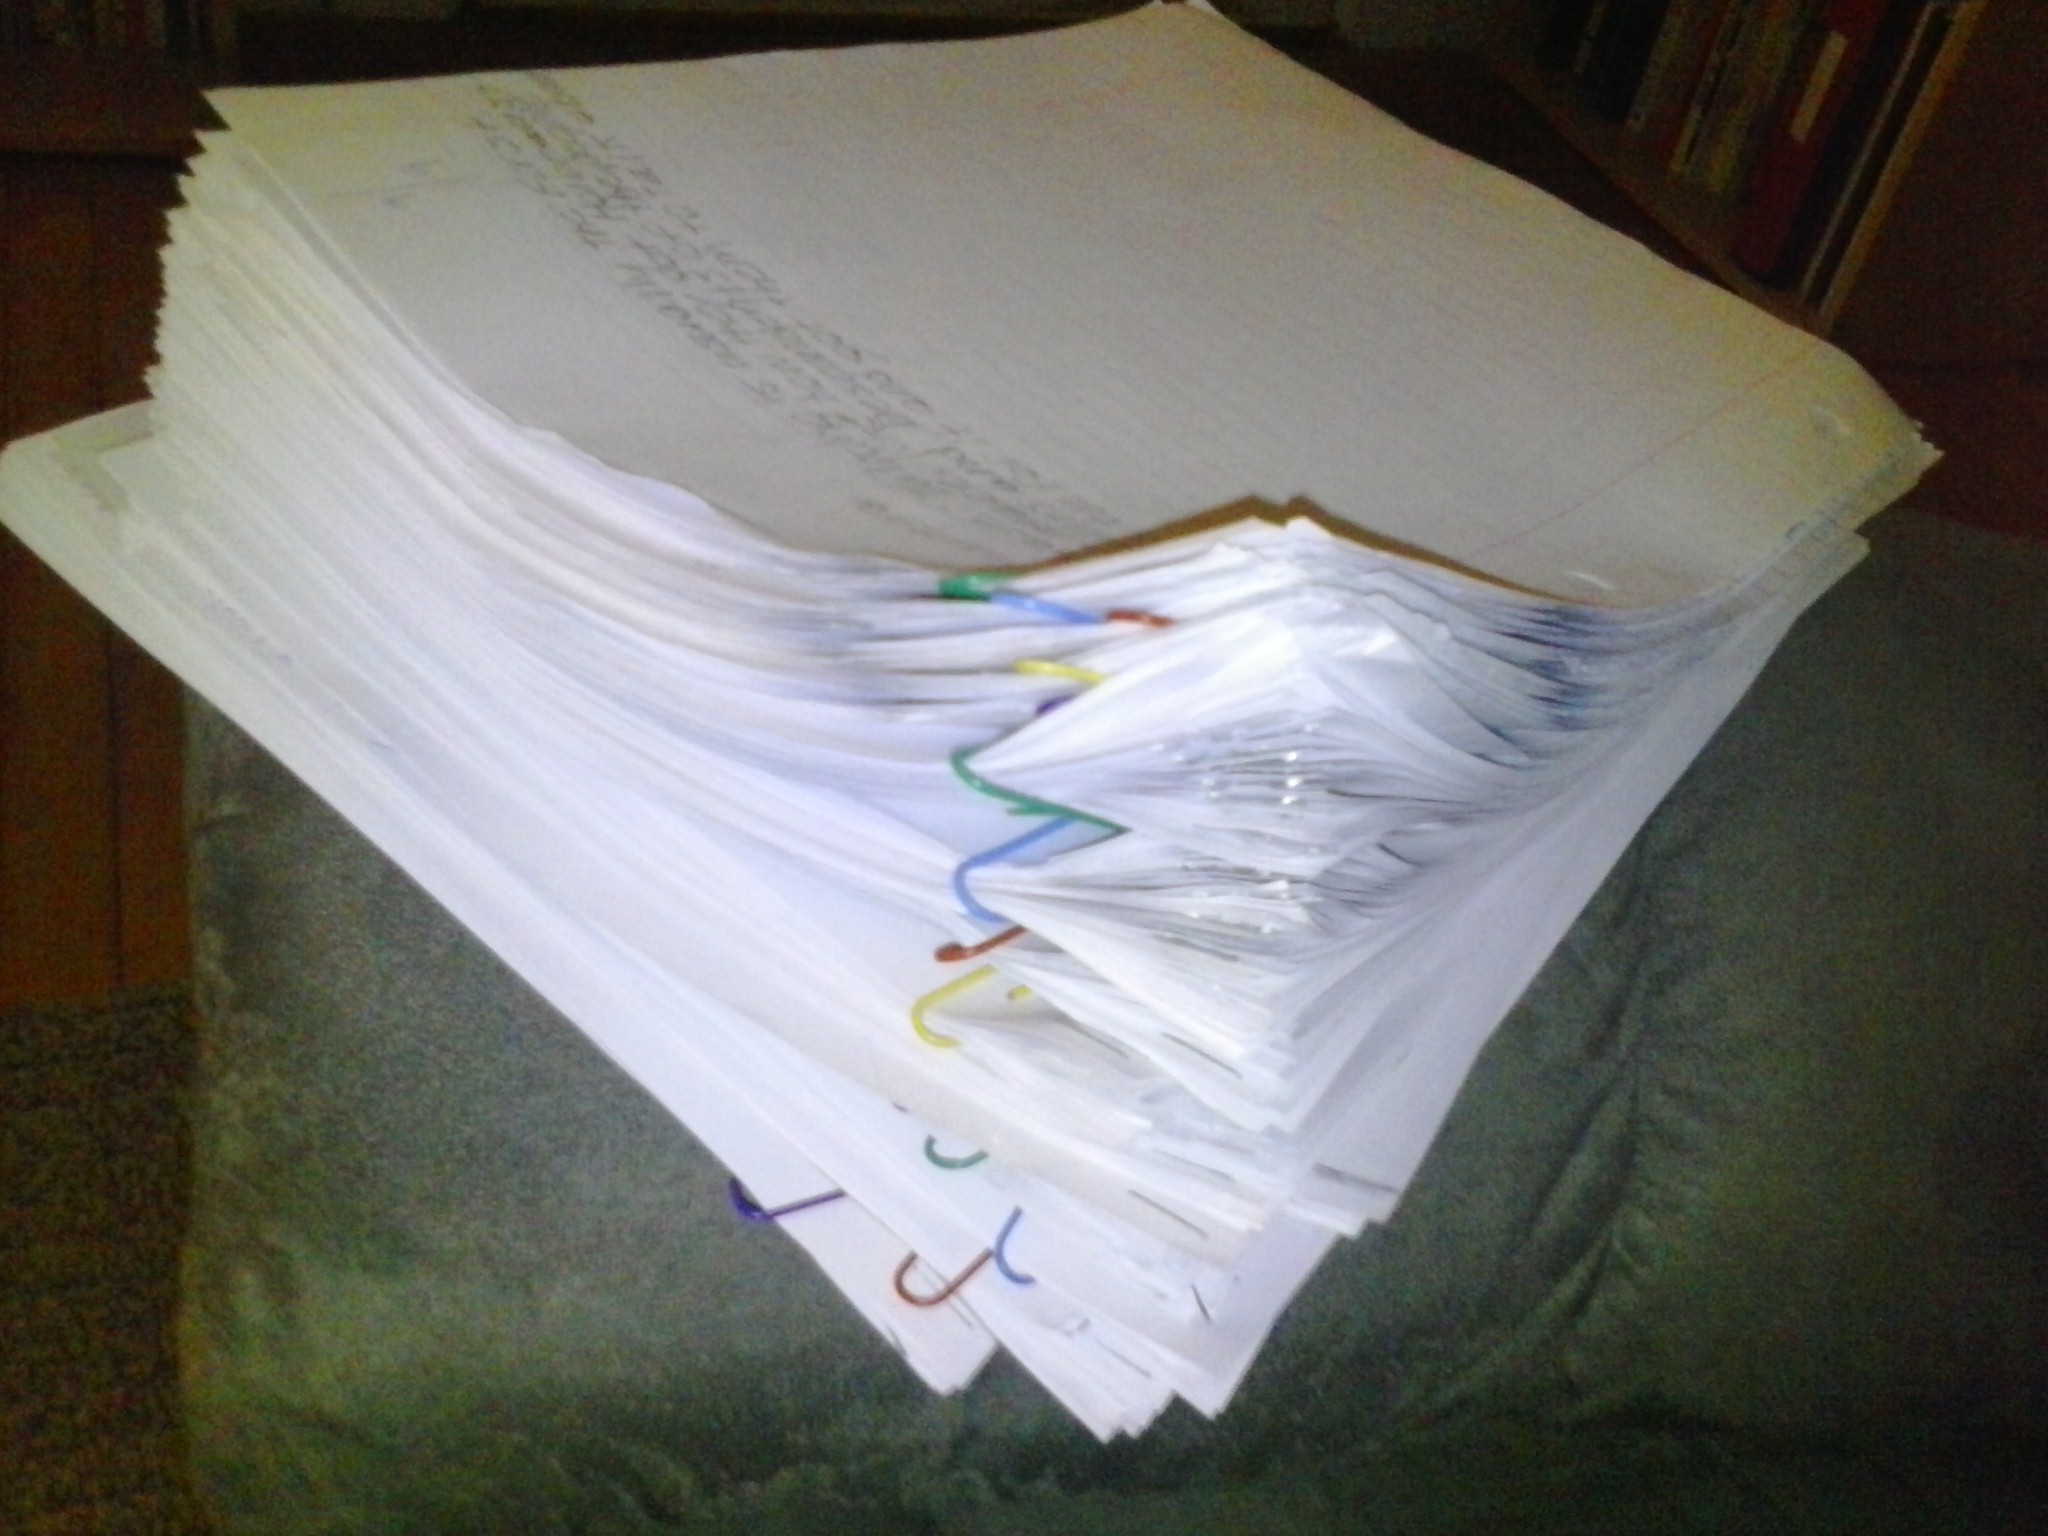 A typical stack of papers to grade